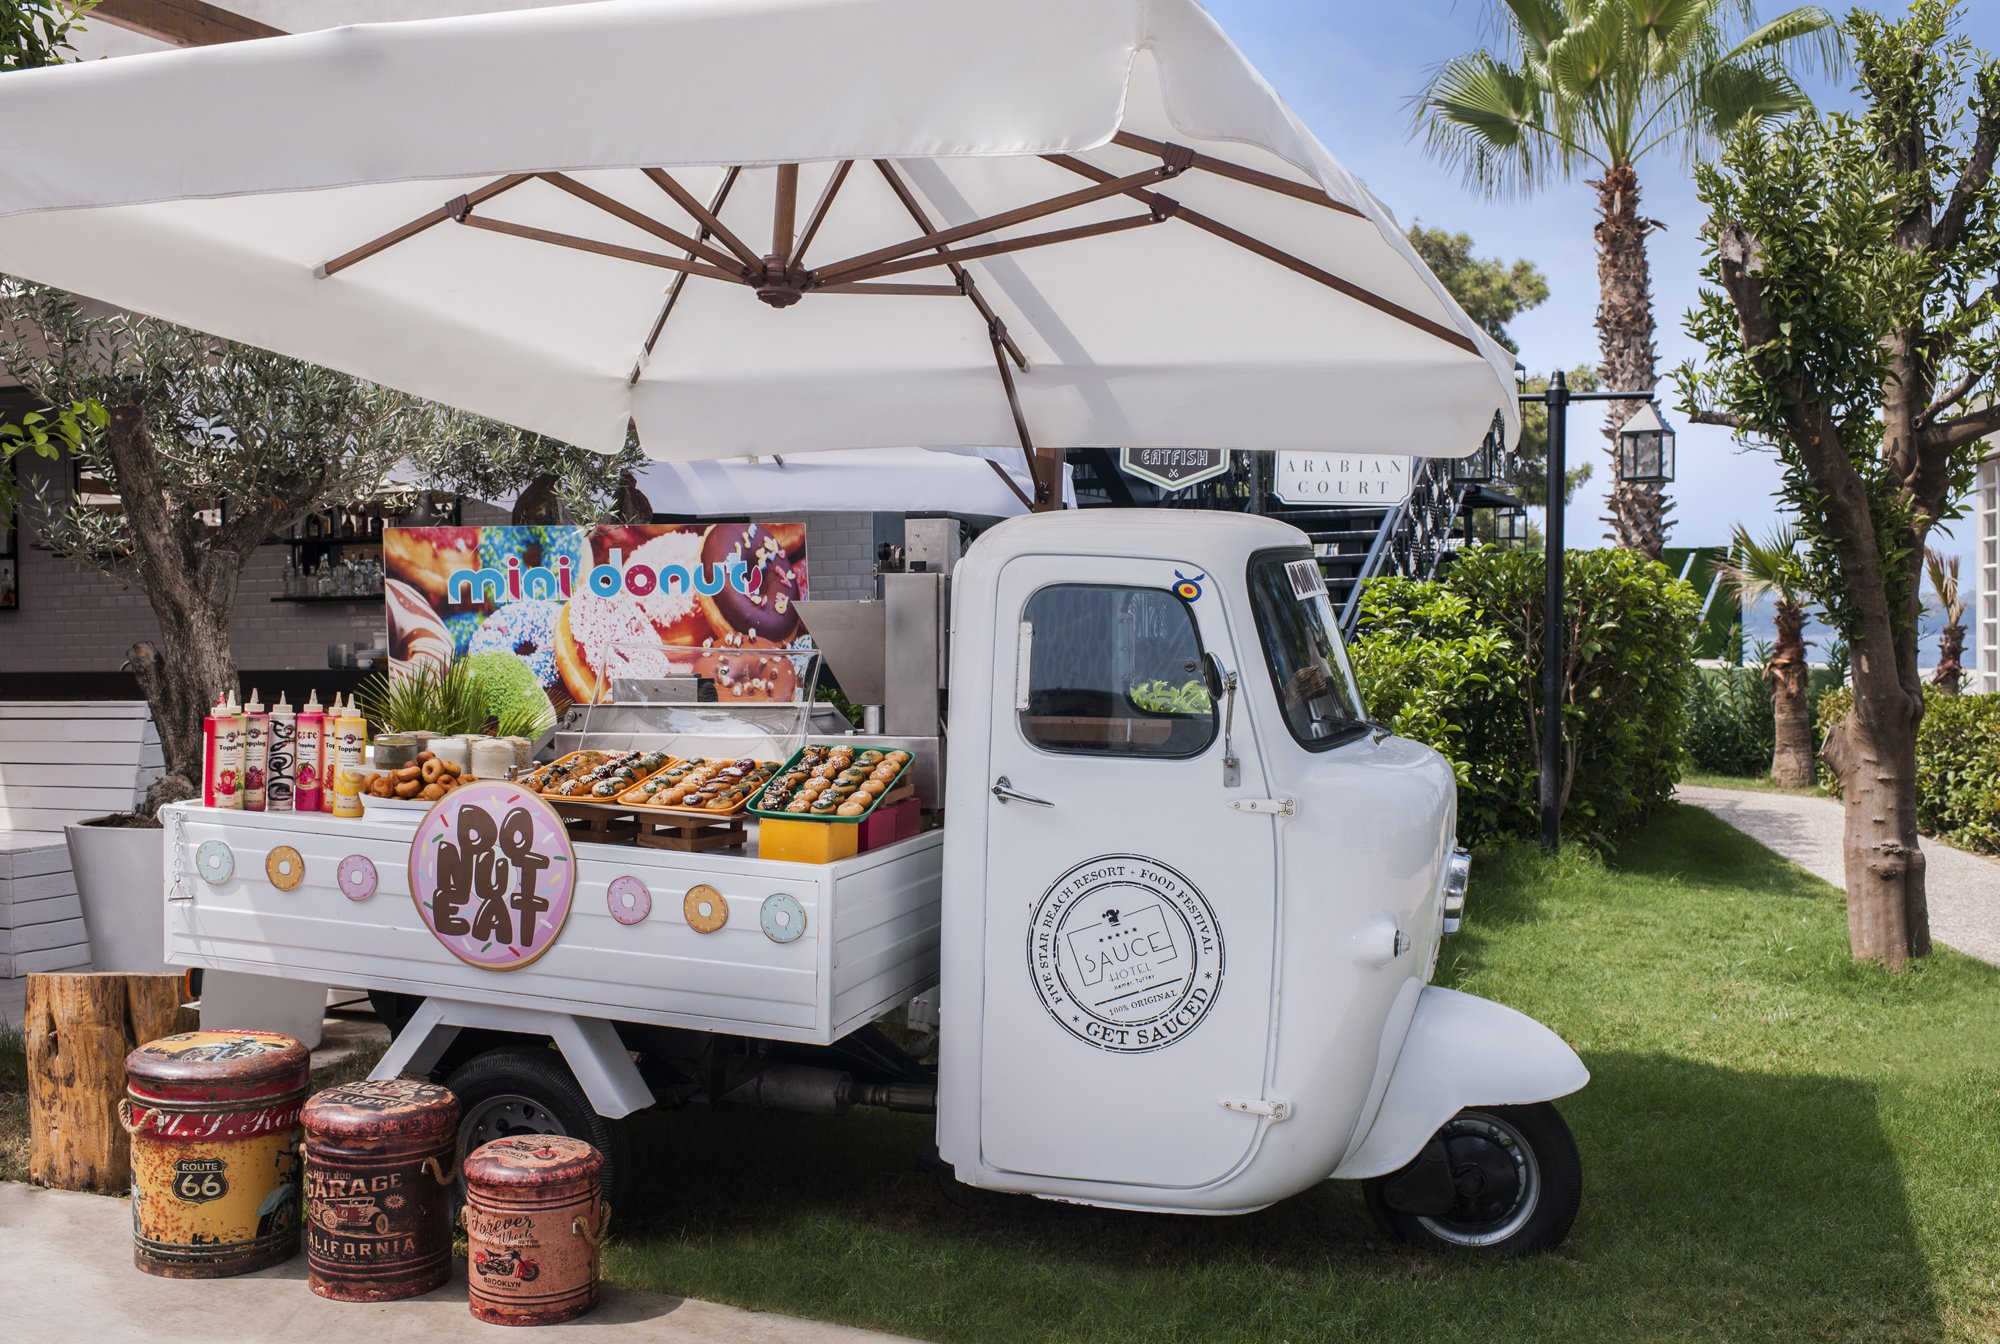 Getting The Truck Or Cart - Food Truck Business